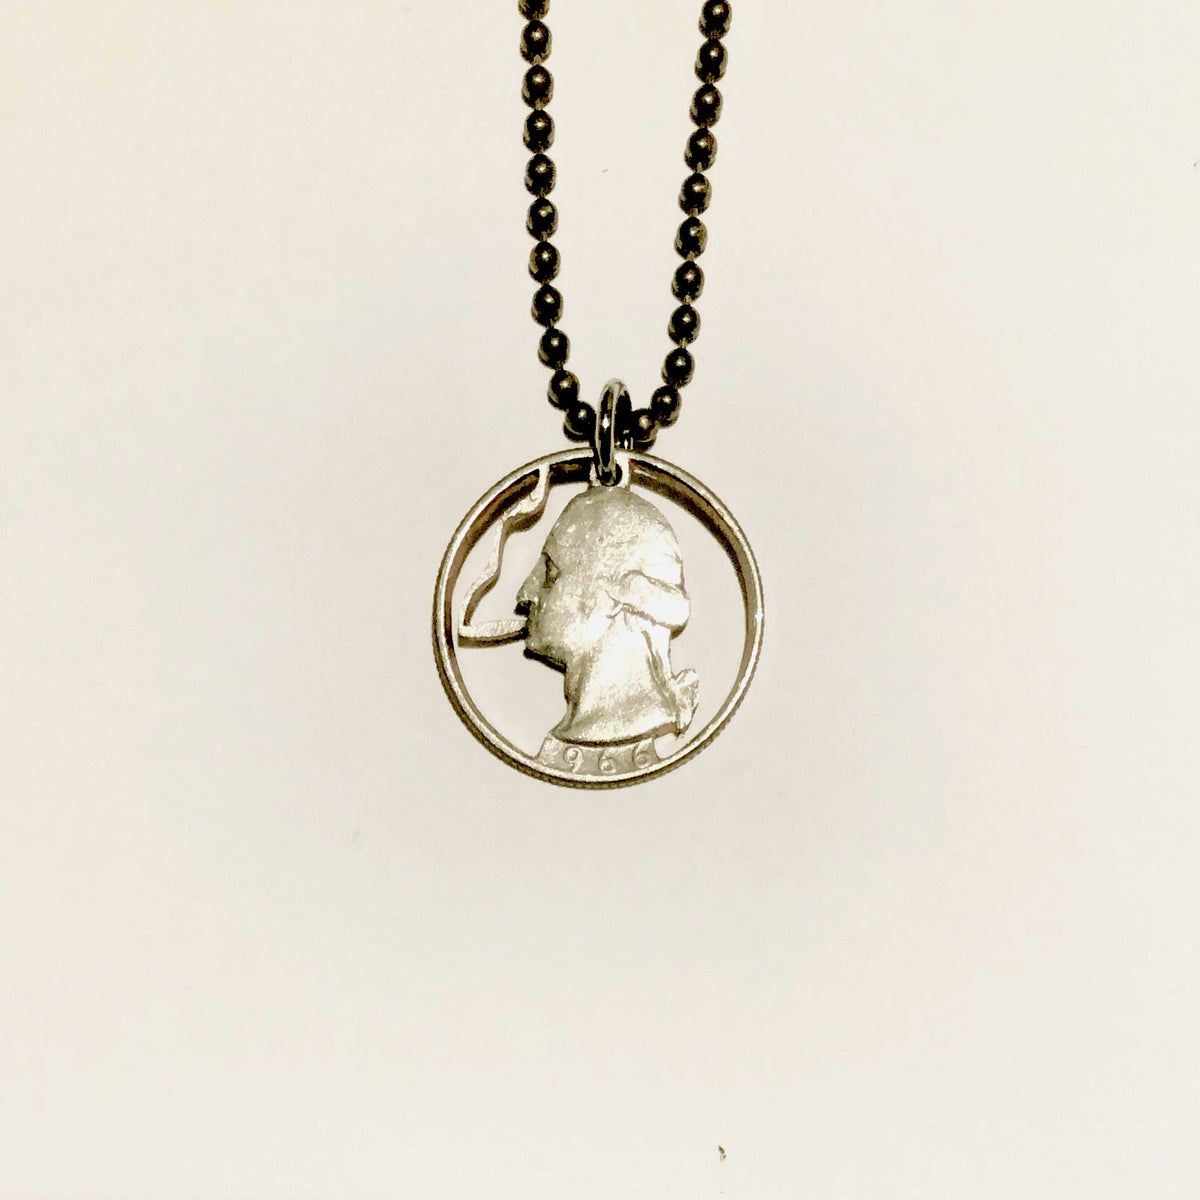 A TSY Hand-Cut Smokin' George Washington Coin Pendant Necklace, Jewelry, FINAL SALE!